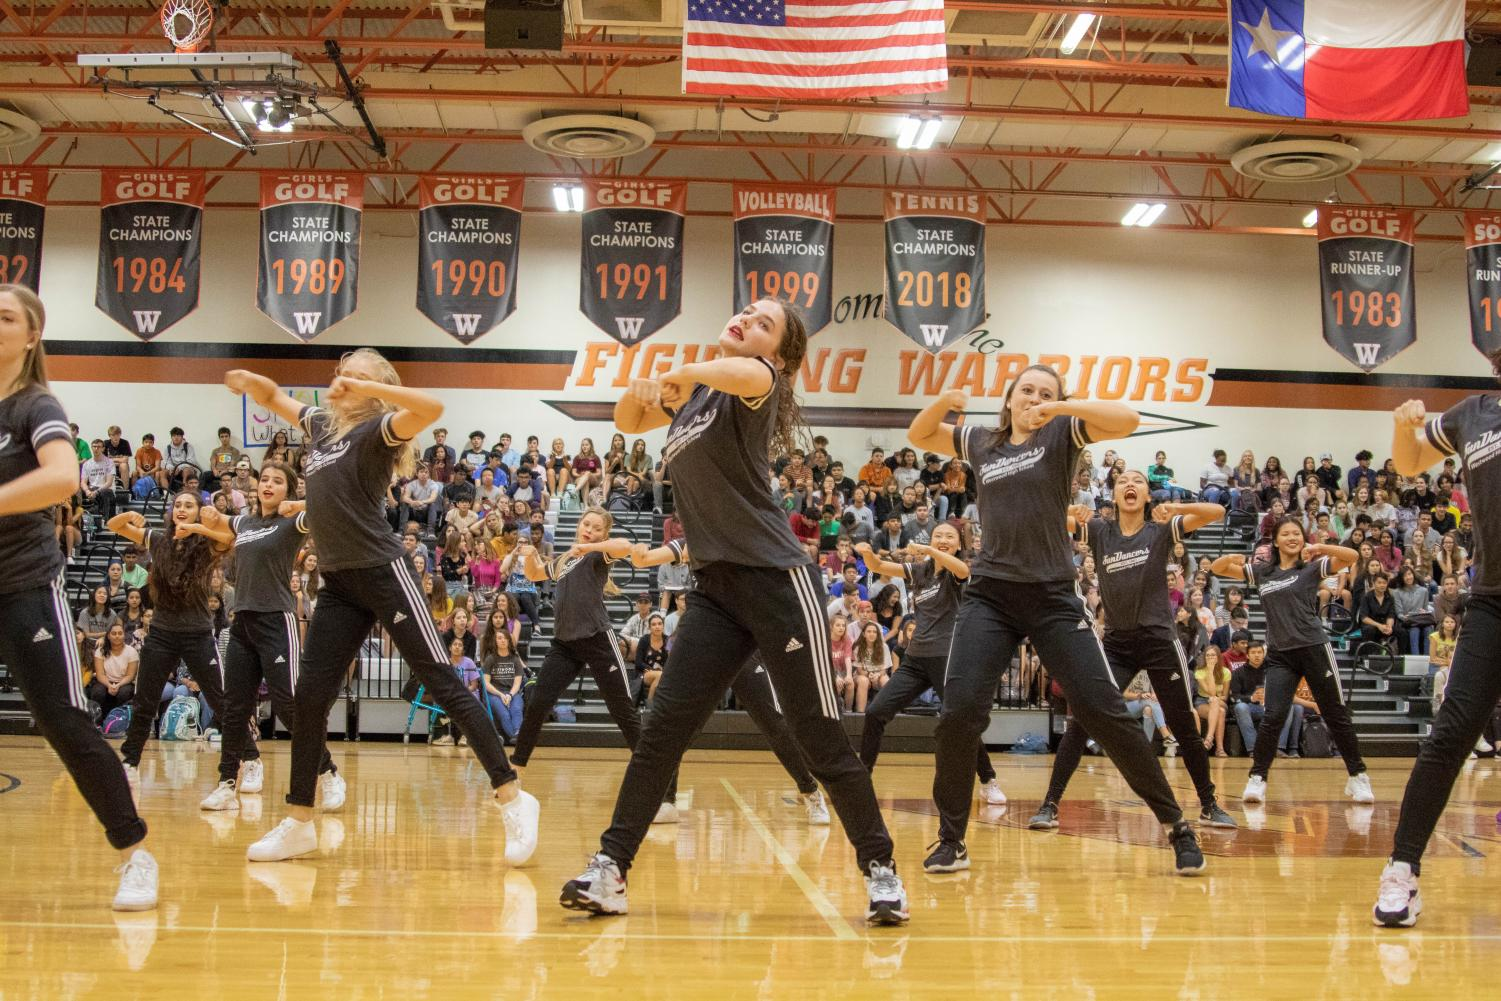 Carolina+Garza+%2720+dances+to+%22Bad+Guy%22.+The+SunDancers%2C+a+pride+favorite+every+pep+rally%2C+put+a+twist+on+their+performance+this+pep+rally+inviting+faculty+to+join+their+dance.+%22I+find+it+so+fun+%5Bdancing+with+the+teachers%5D+because+you+get+to+have+a+small+connection+with+them+when+you+dance+together%2C+you+get+to+teach+them+instead+of+them+teaching+you+I+think+that%27s+really+cool%2C%E2%80%9D+Garza+said.%0A